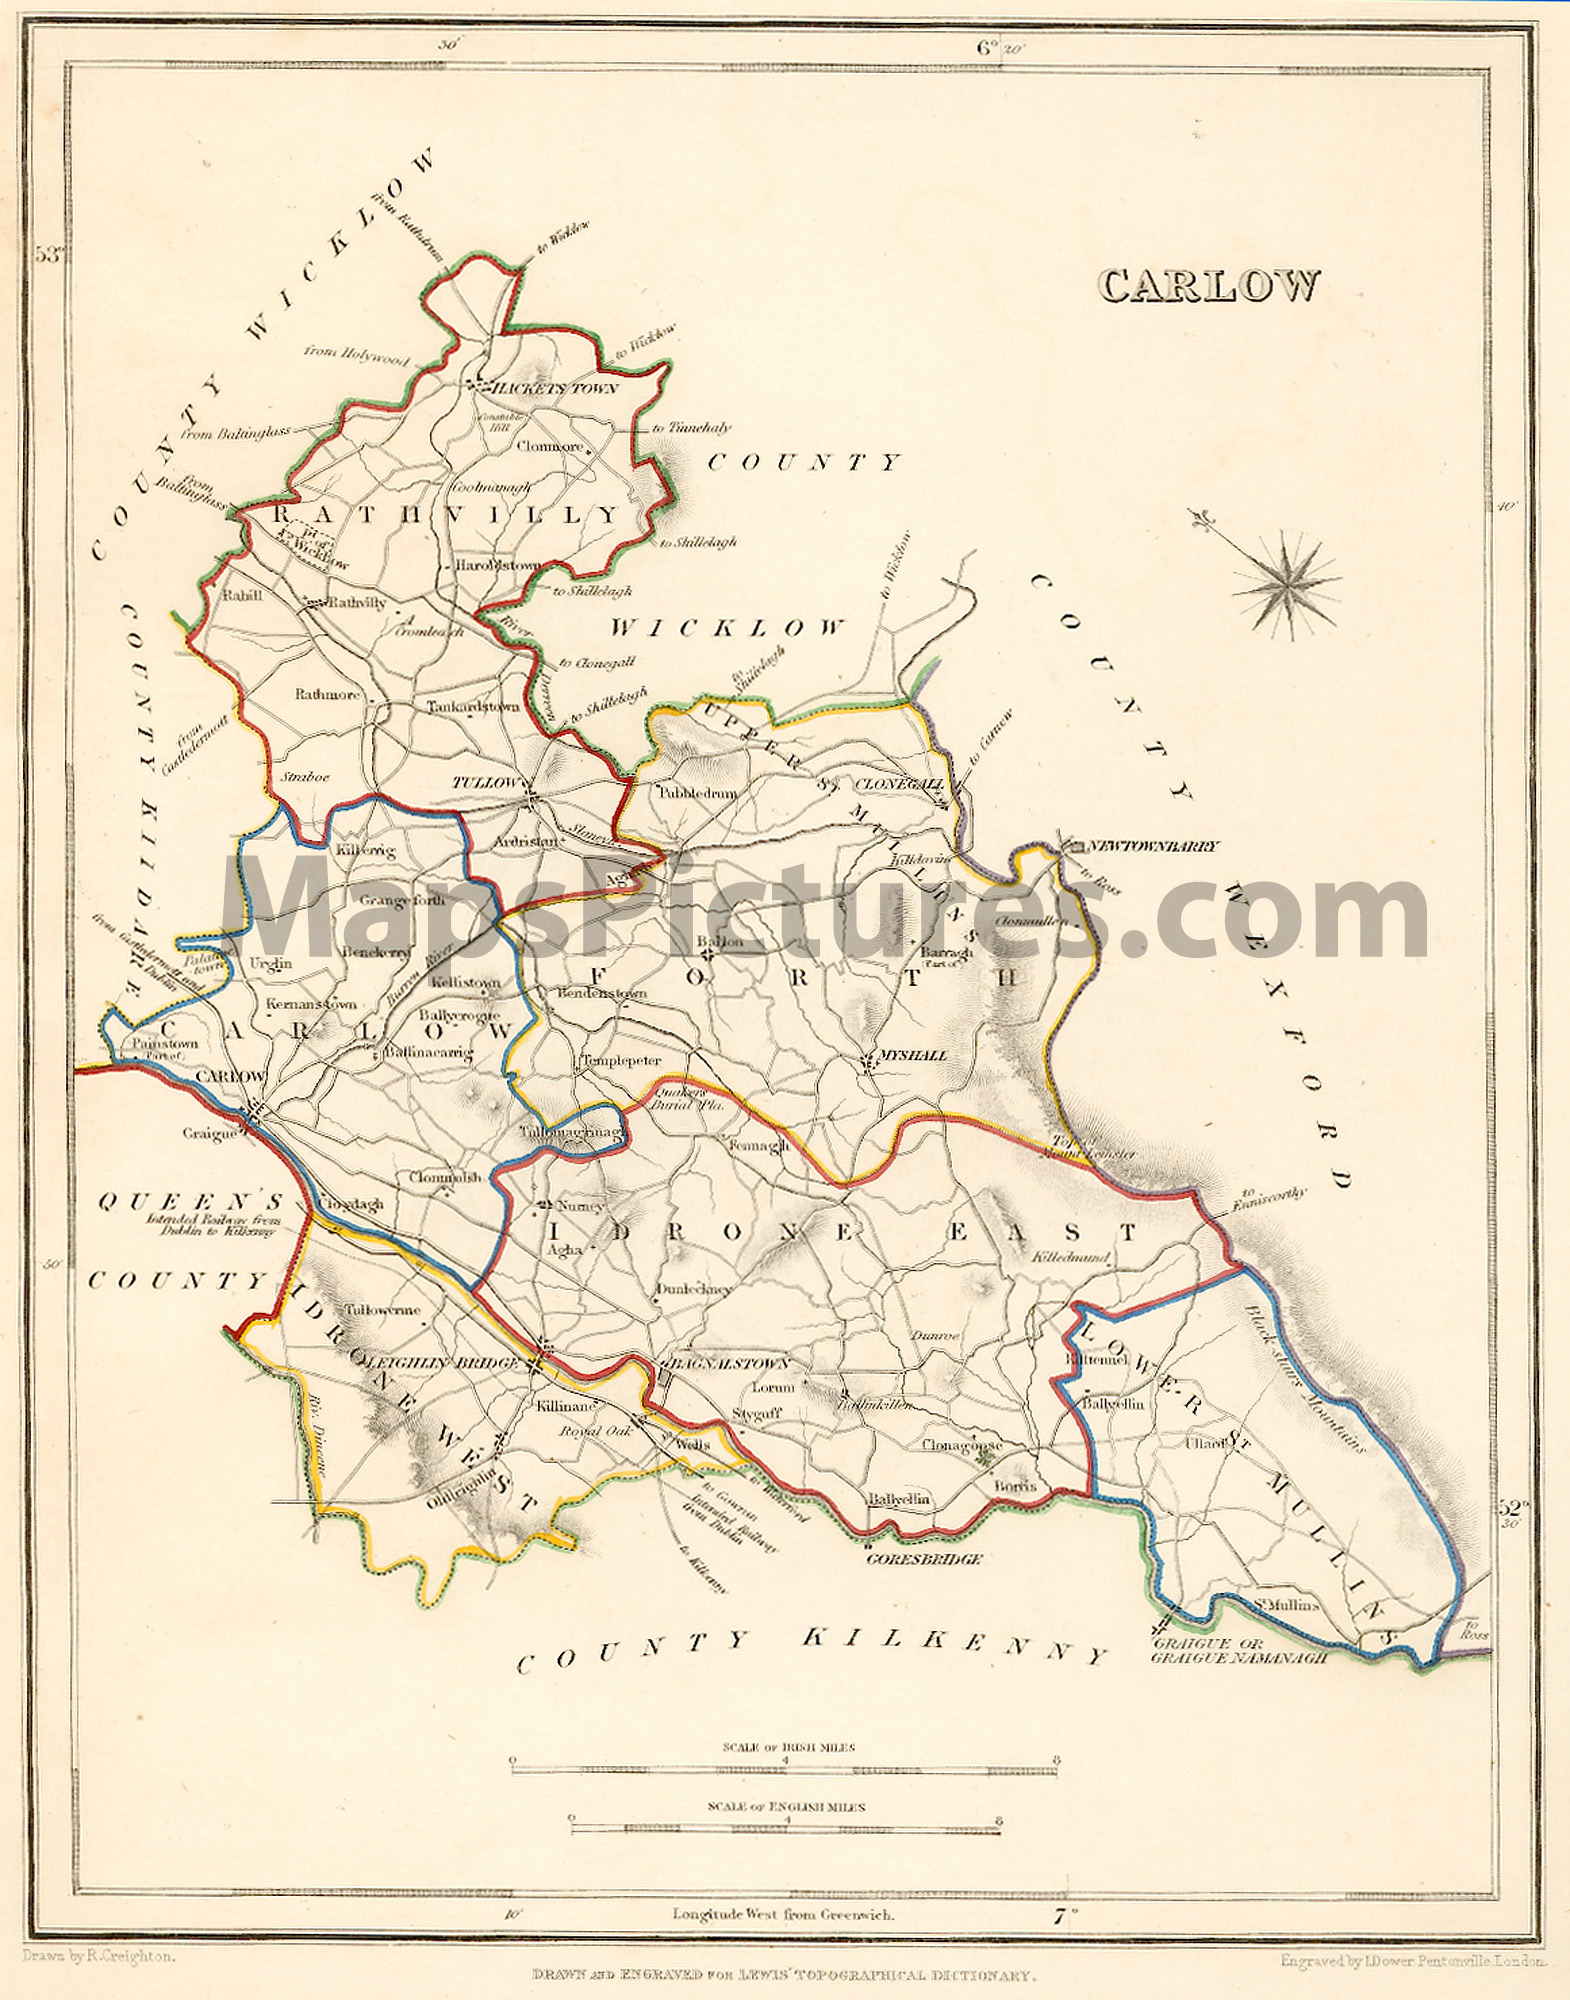 Carlow Map Of Ireland.County Carlow Ireland Map 1837